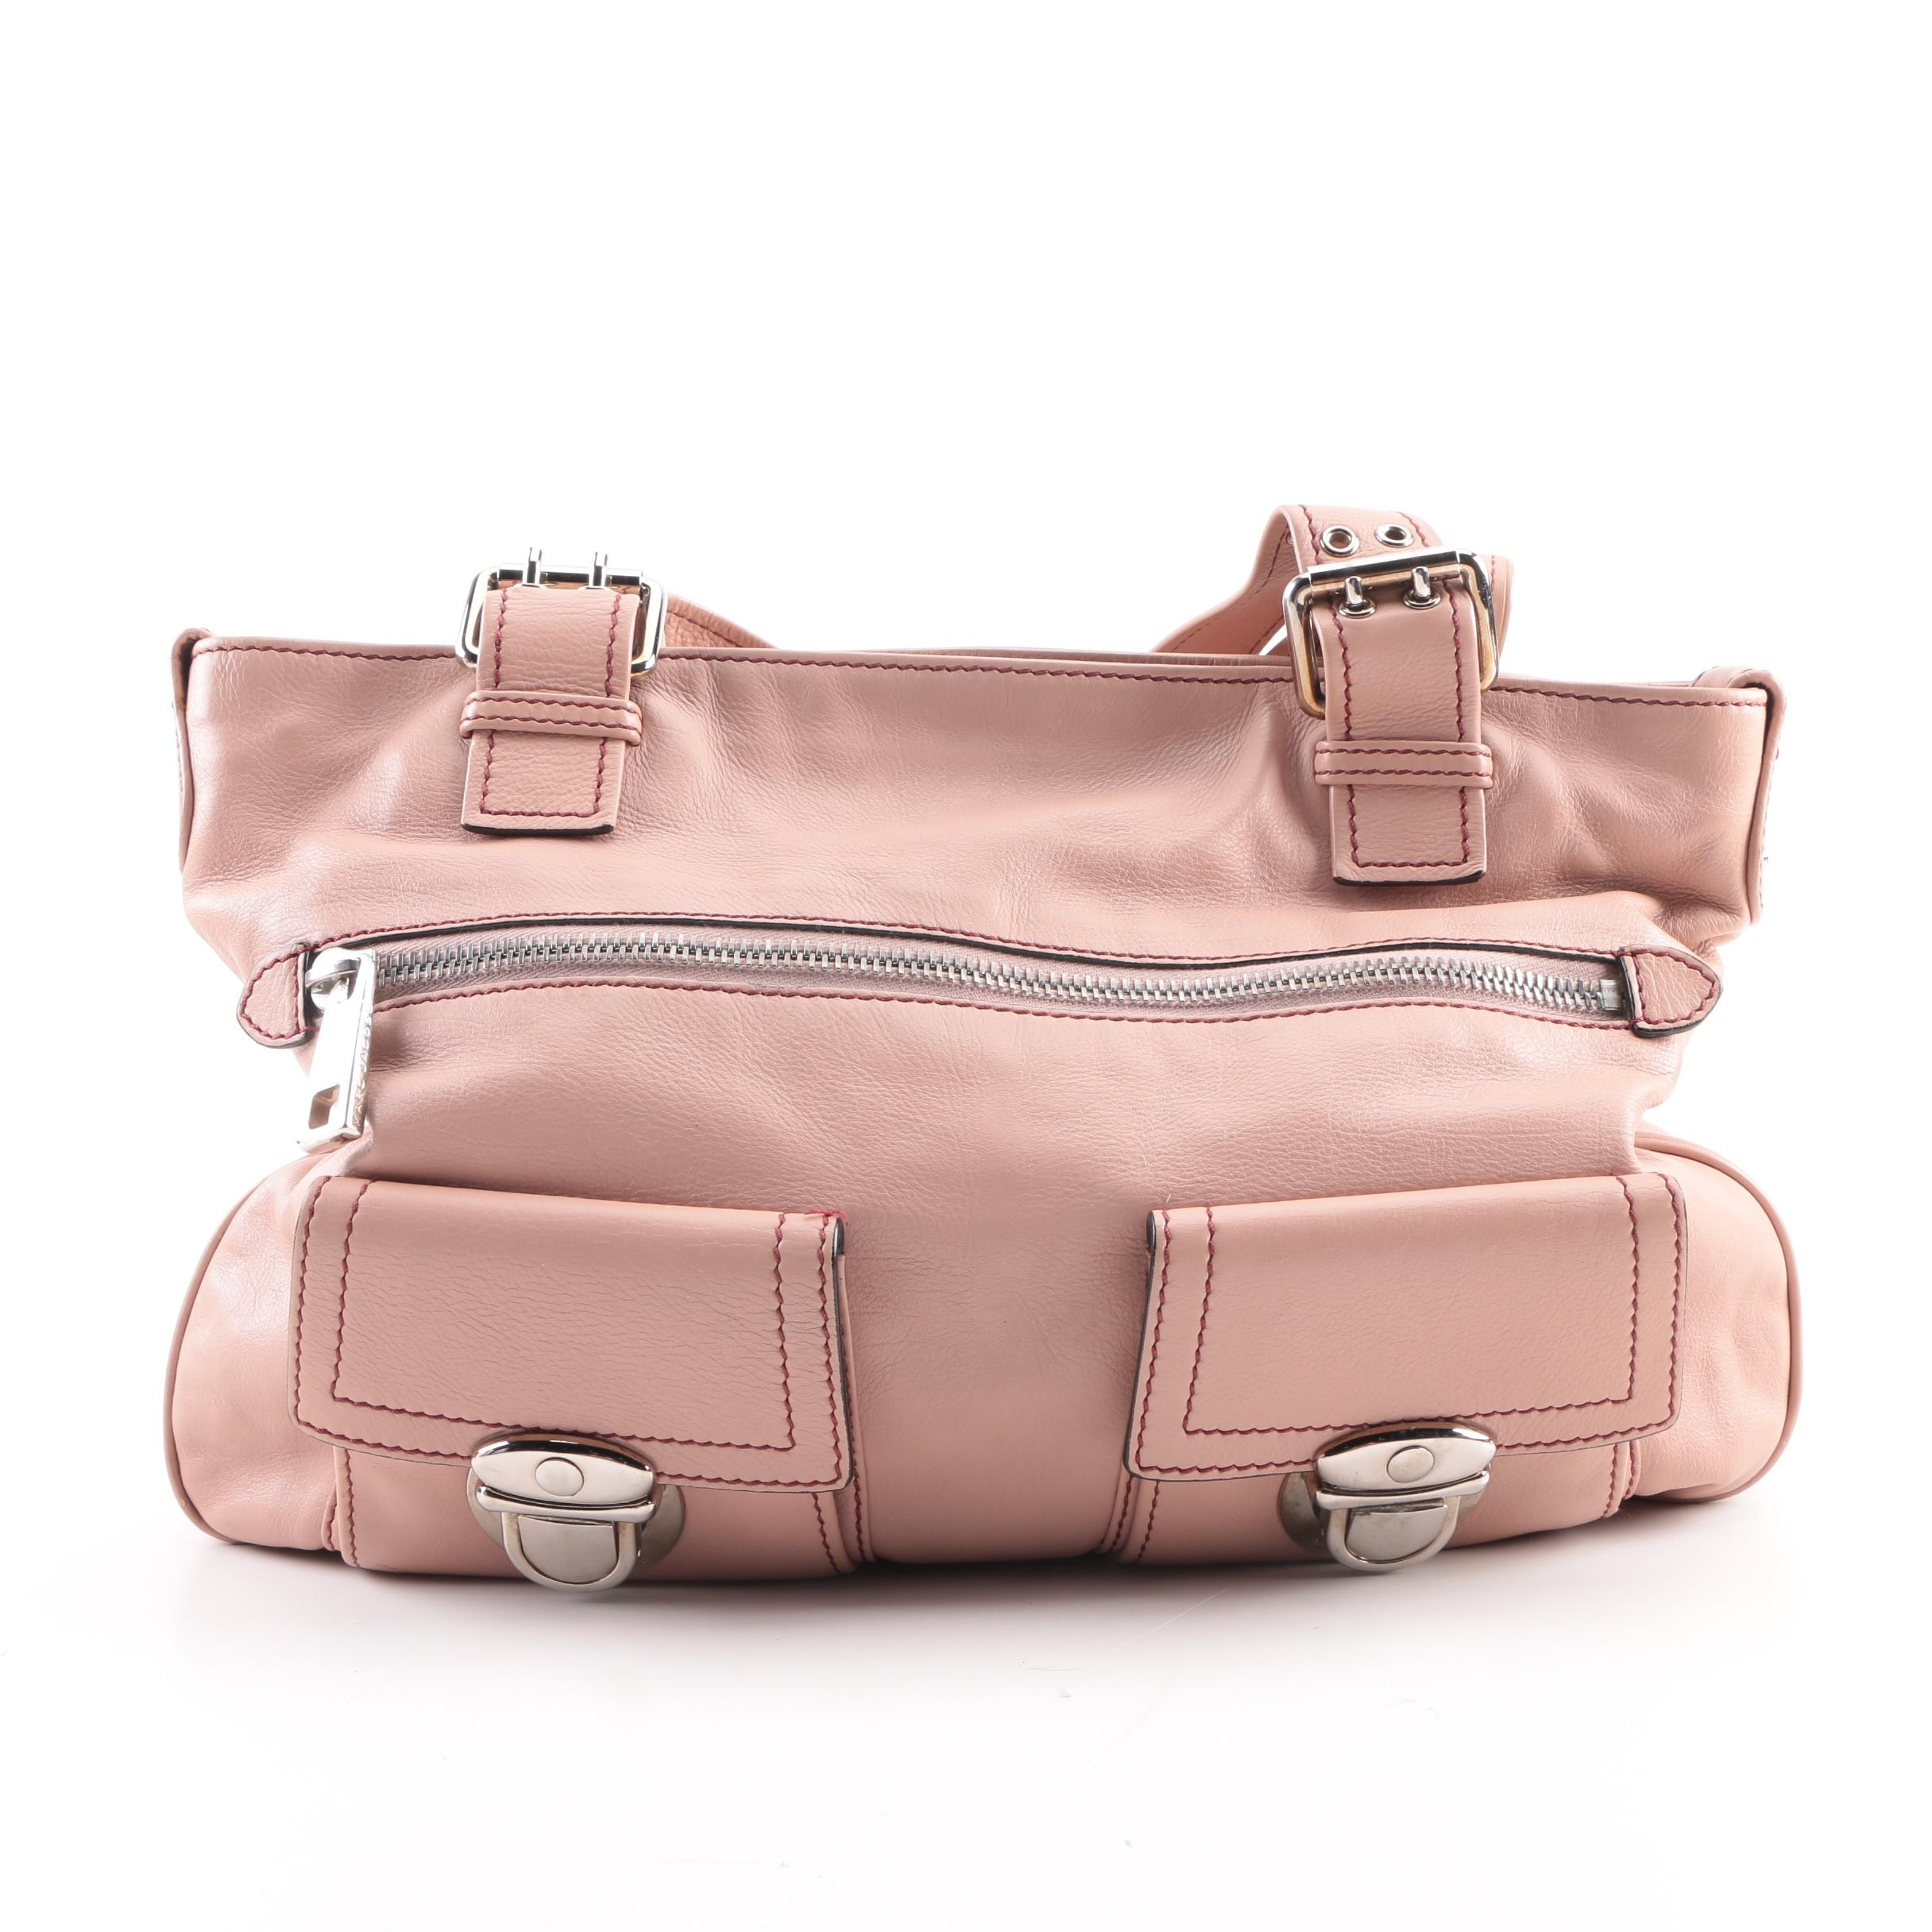 Marc Jacobs Pink Leather Shoulder Bag